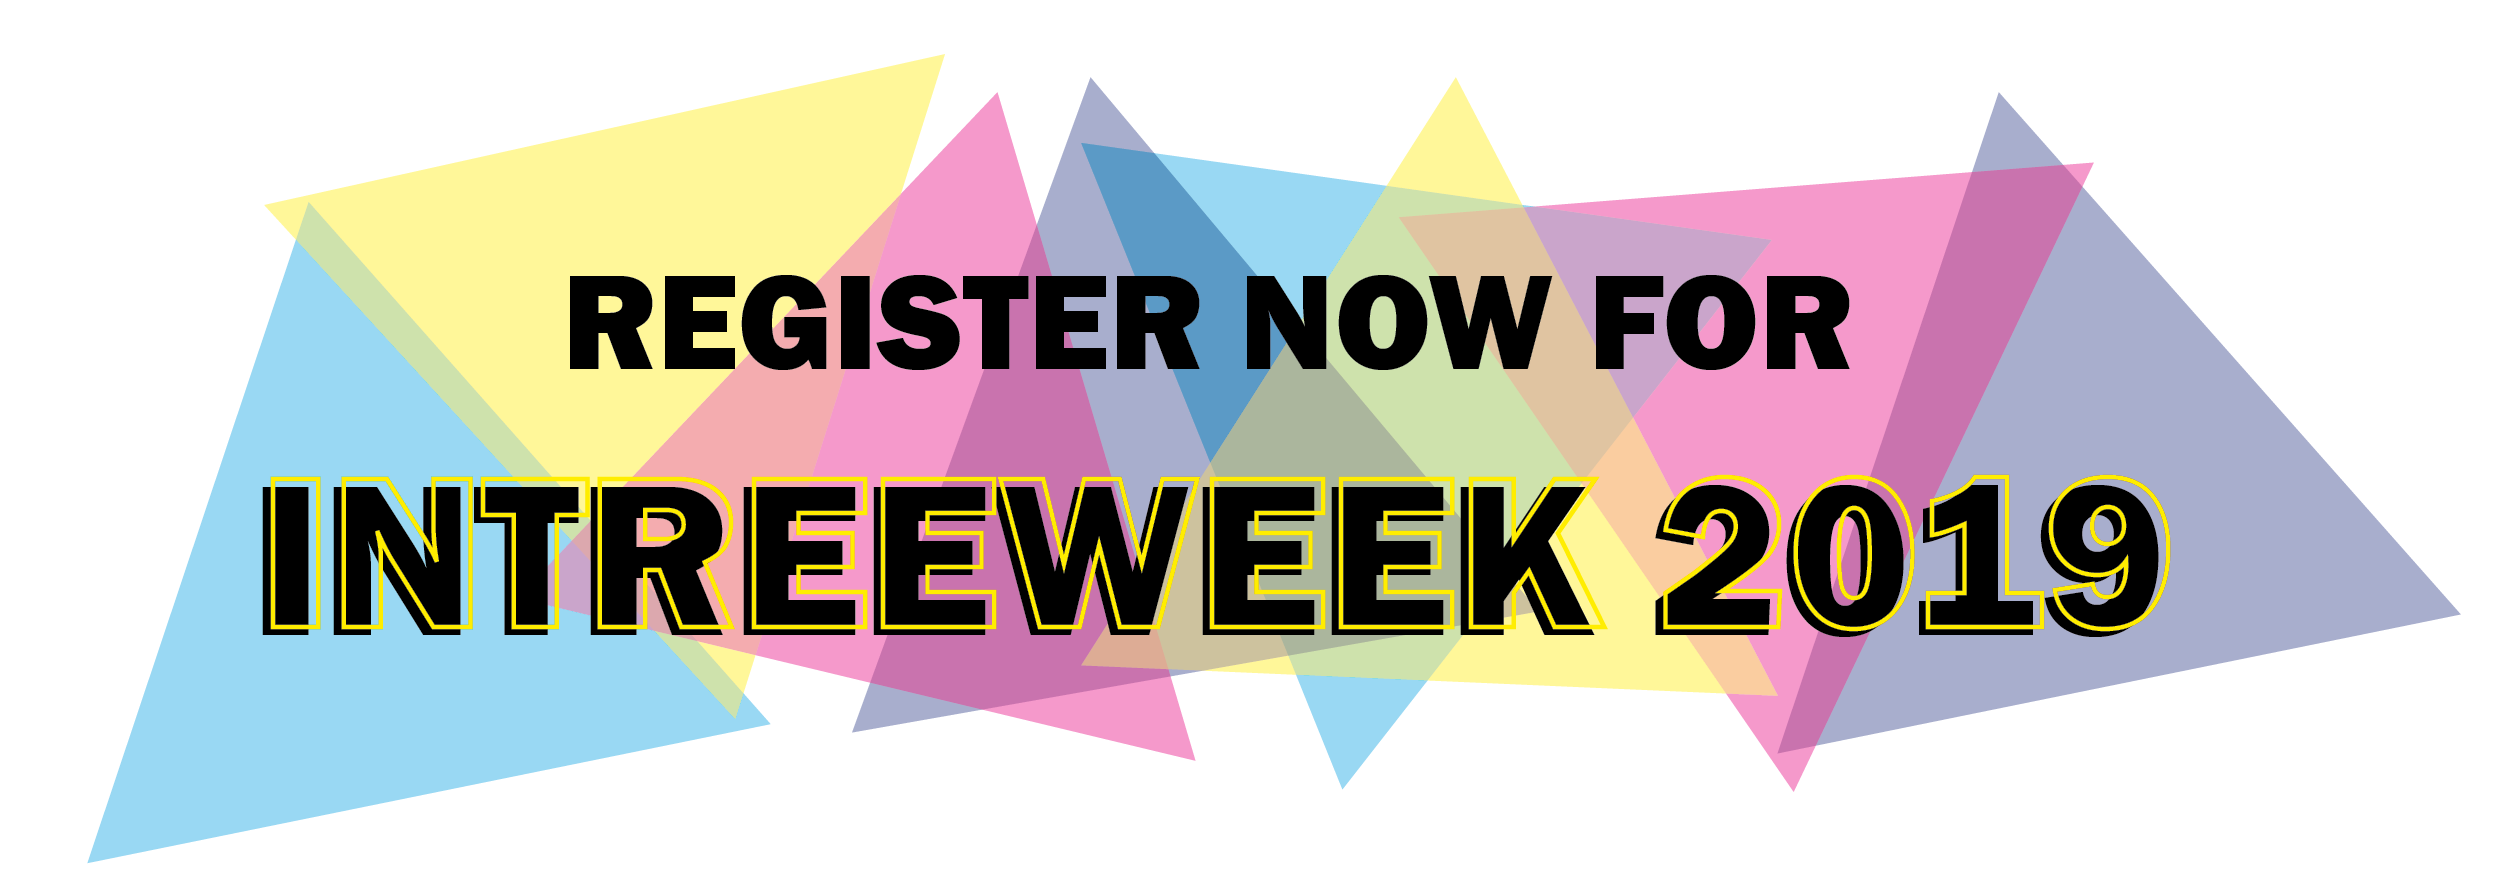 Register now for Intreeweek 2019